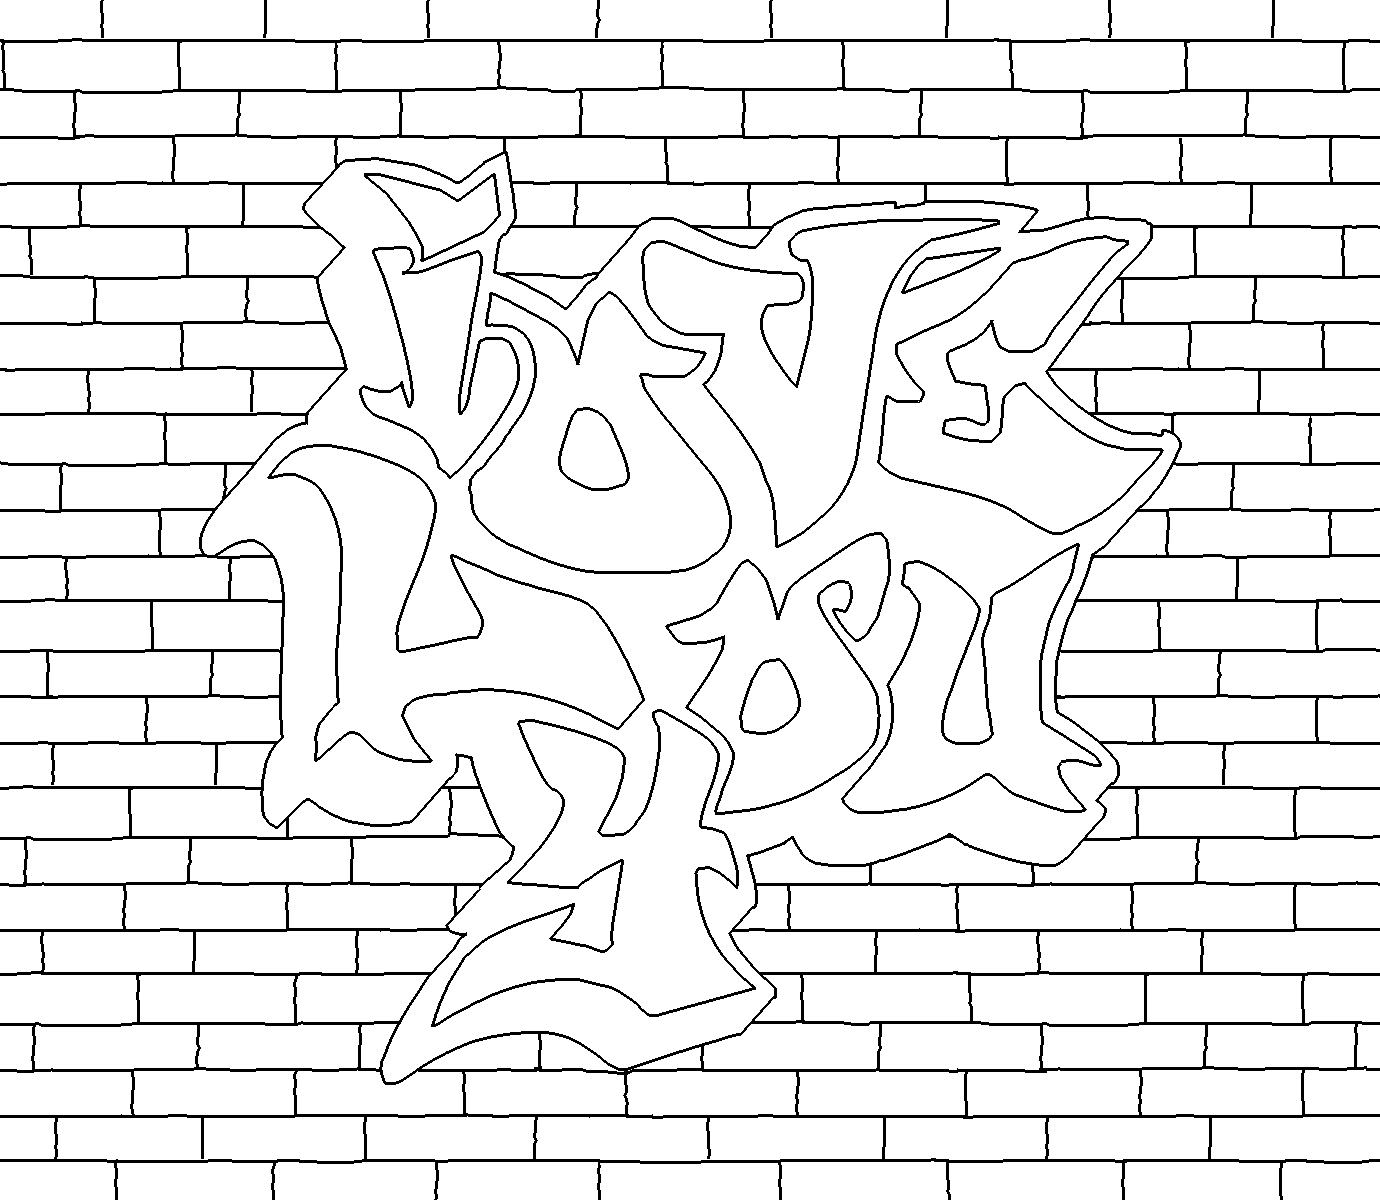 Graffiti Word Coloring Pages